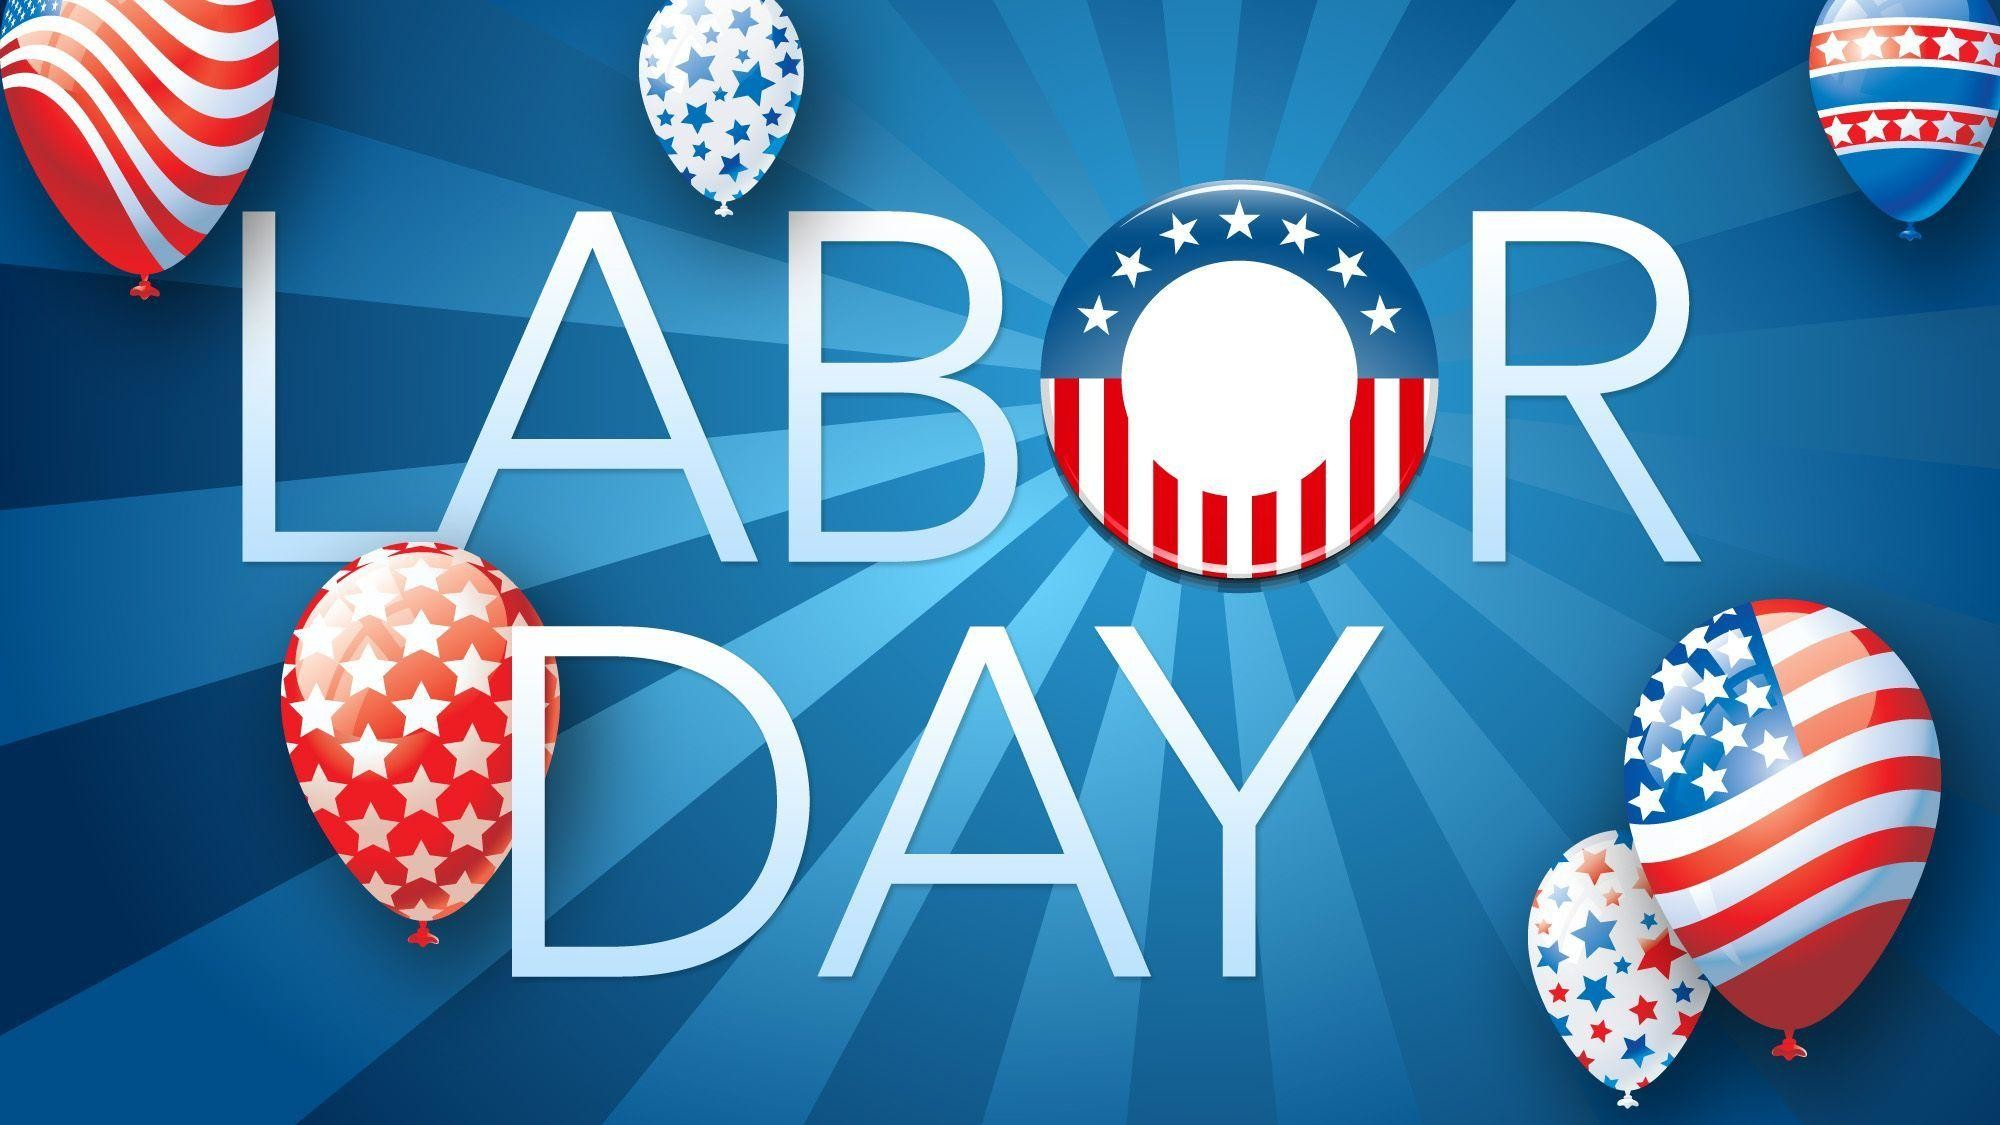 2000x1125 Images For > Happy Labor Day Wallpaper